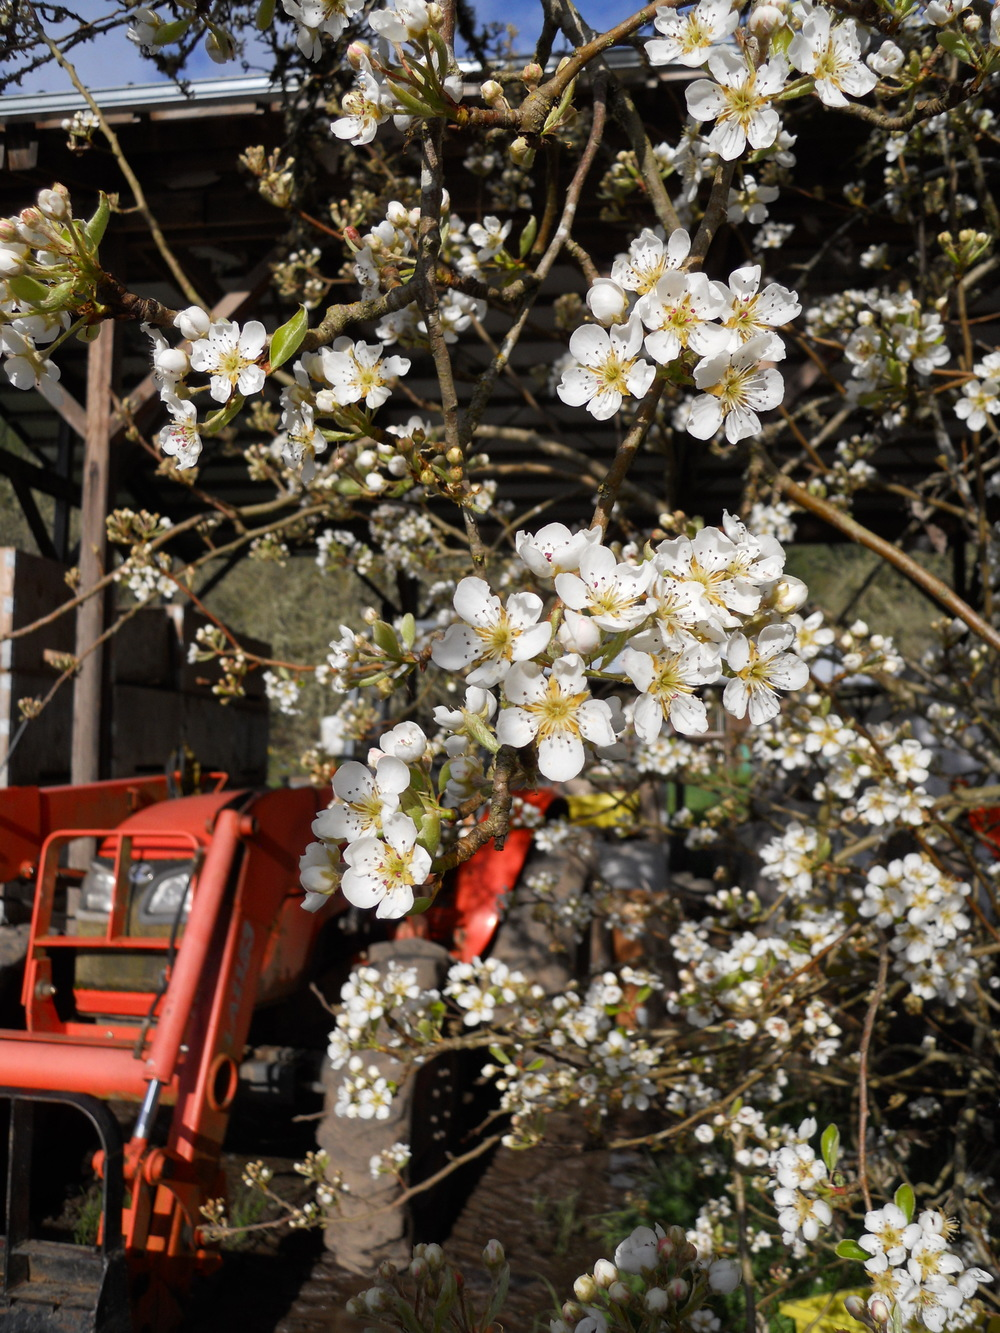 Pear blossoms at the shop.